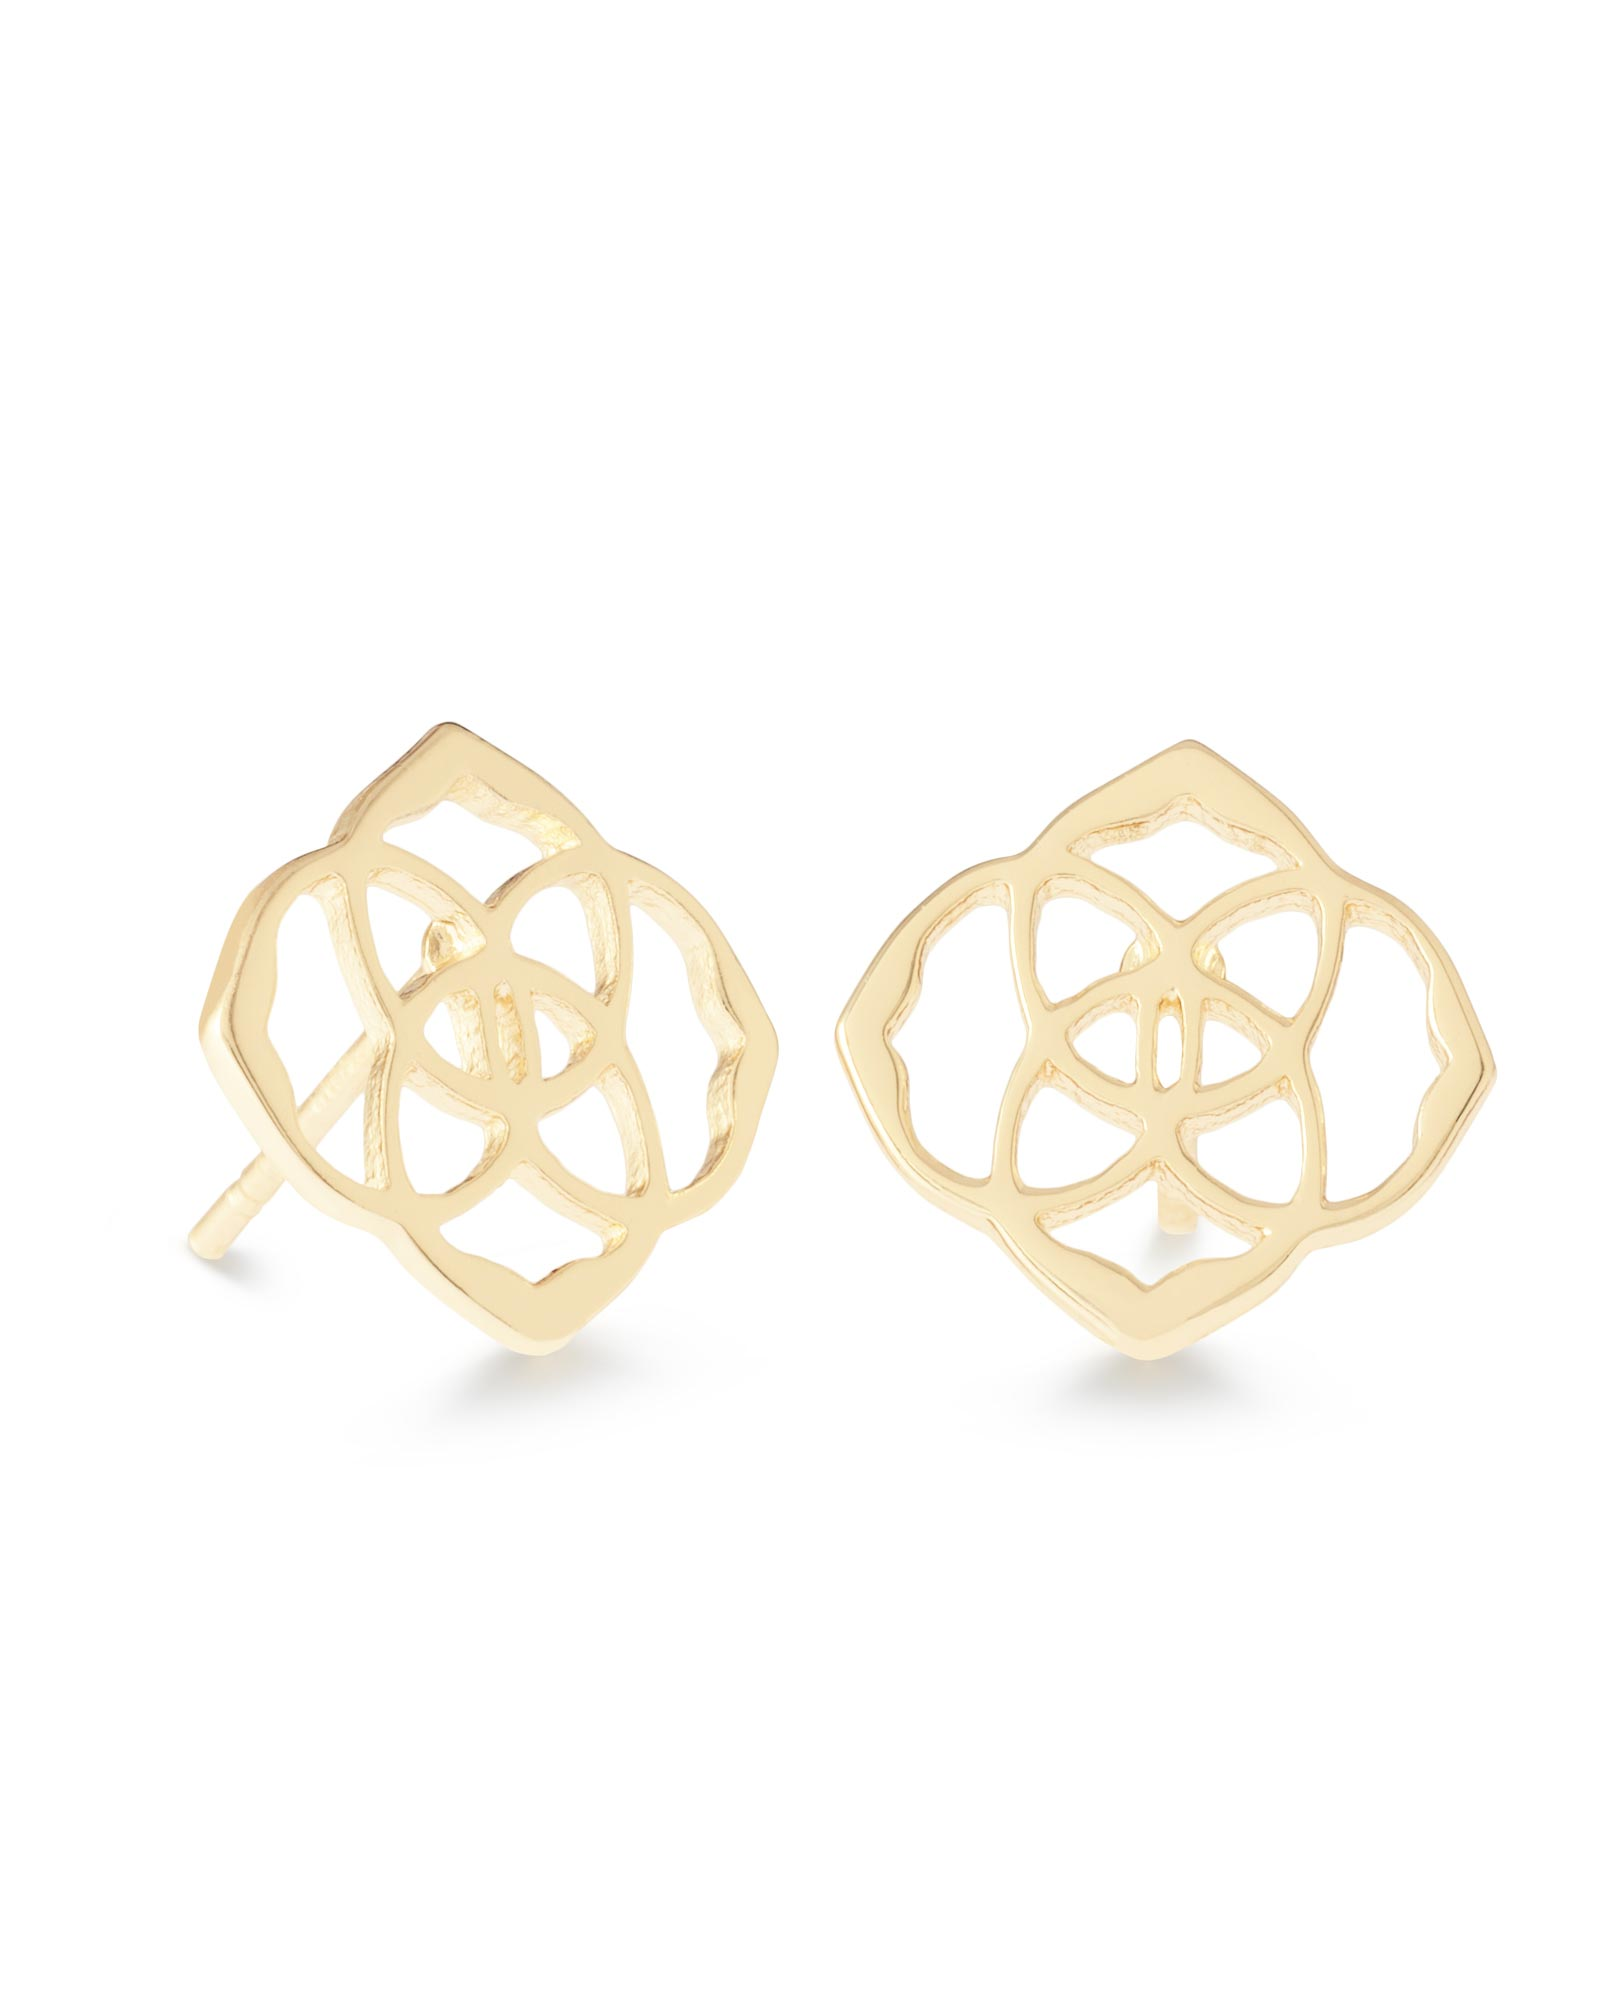 Dira Stud Earrings